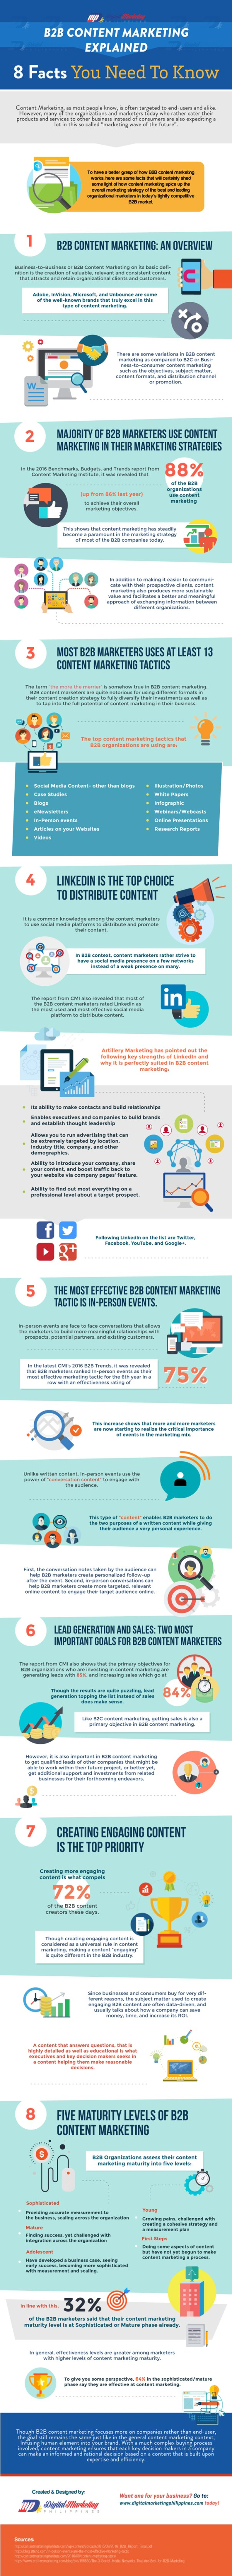 8 Facts You Need to Know About B2B Content Marketing Infographic